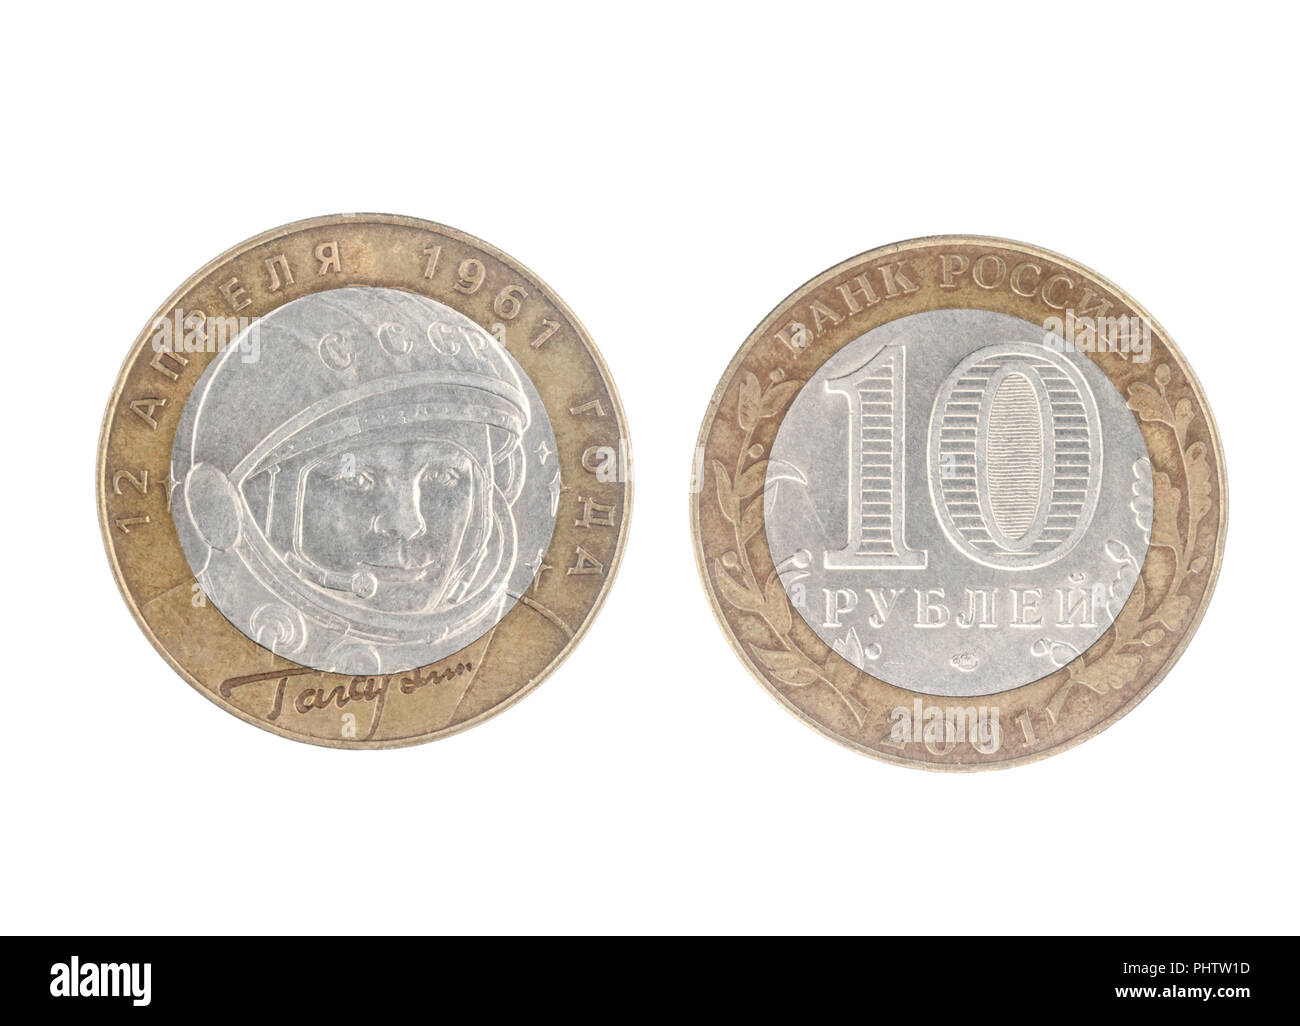 Set of commemorative the USSR coin, the nominal value of 10 ruble.from 2001, shows Yuri Gagarin (1934–1968), Russian cosmonaut. In 1961 he made the fi - Stock Image